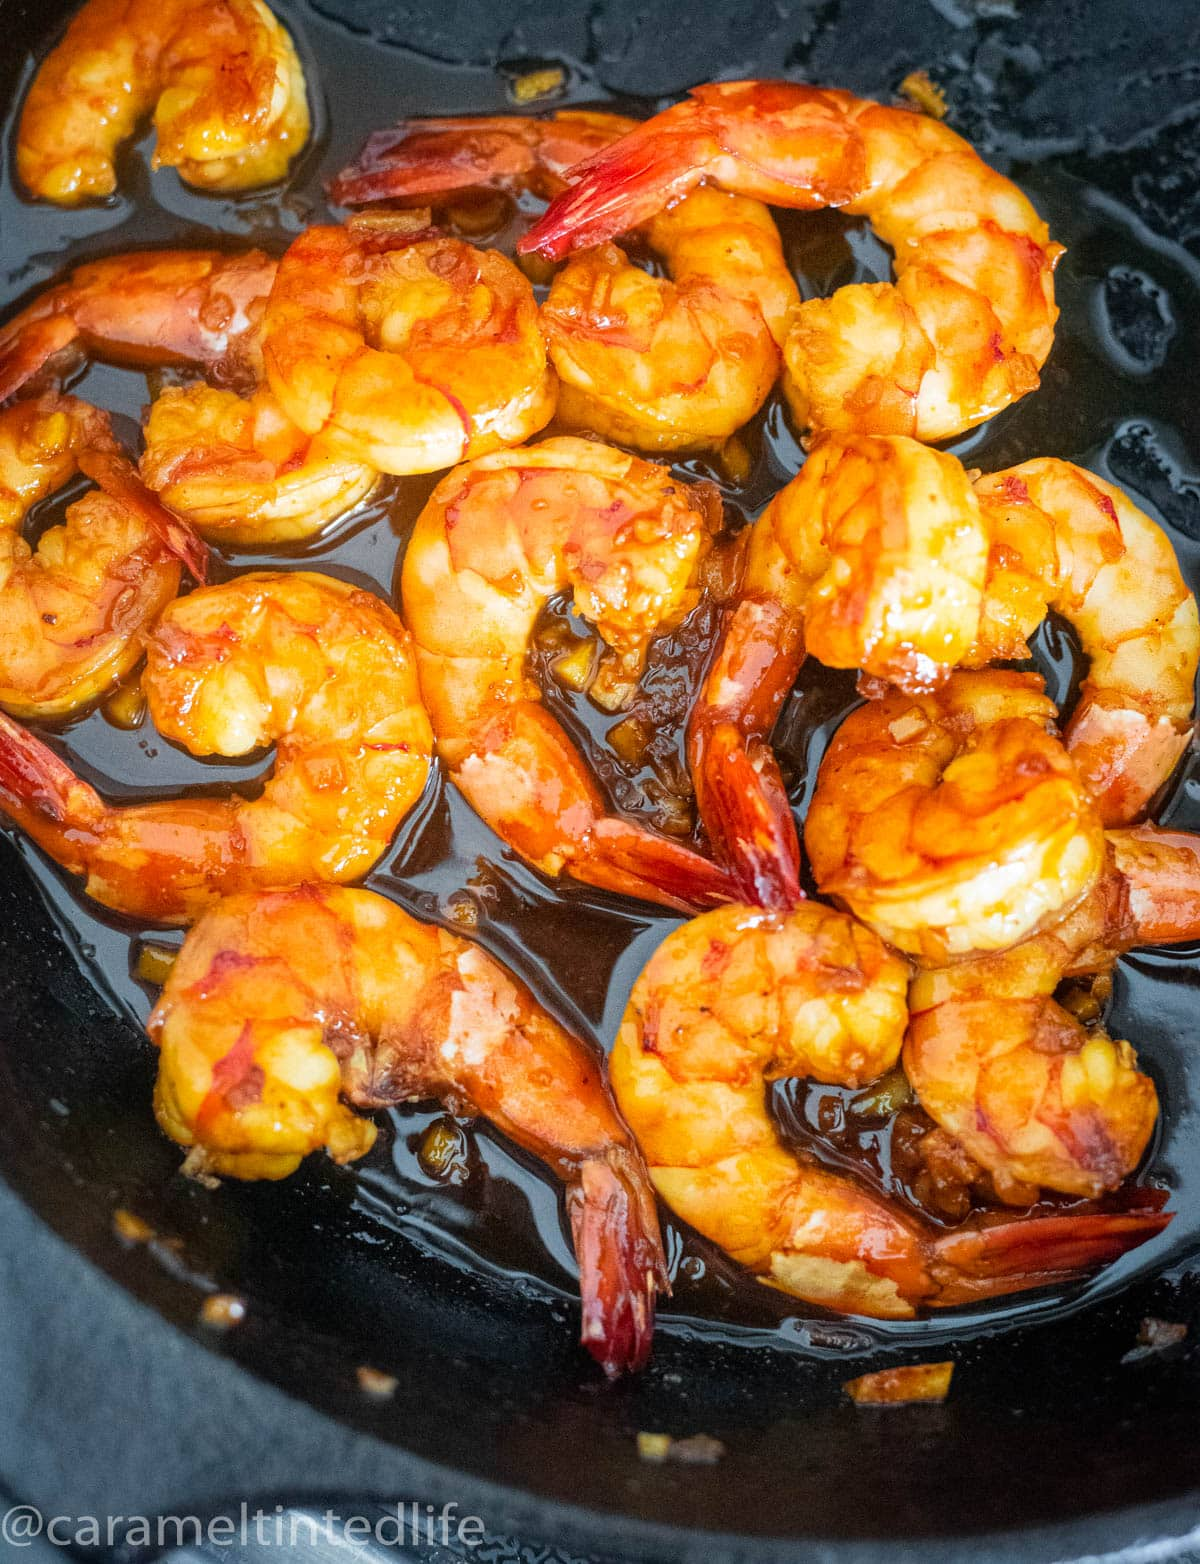 Prawns cooking in a honey garlic sauce in a cast iron skillet pan